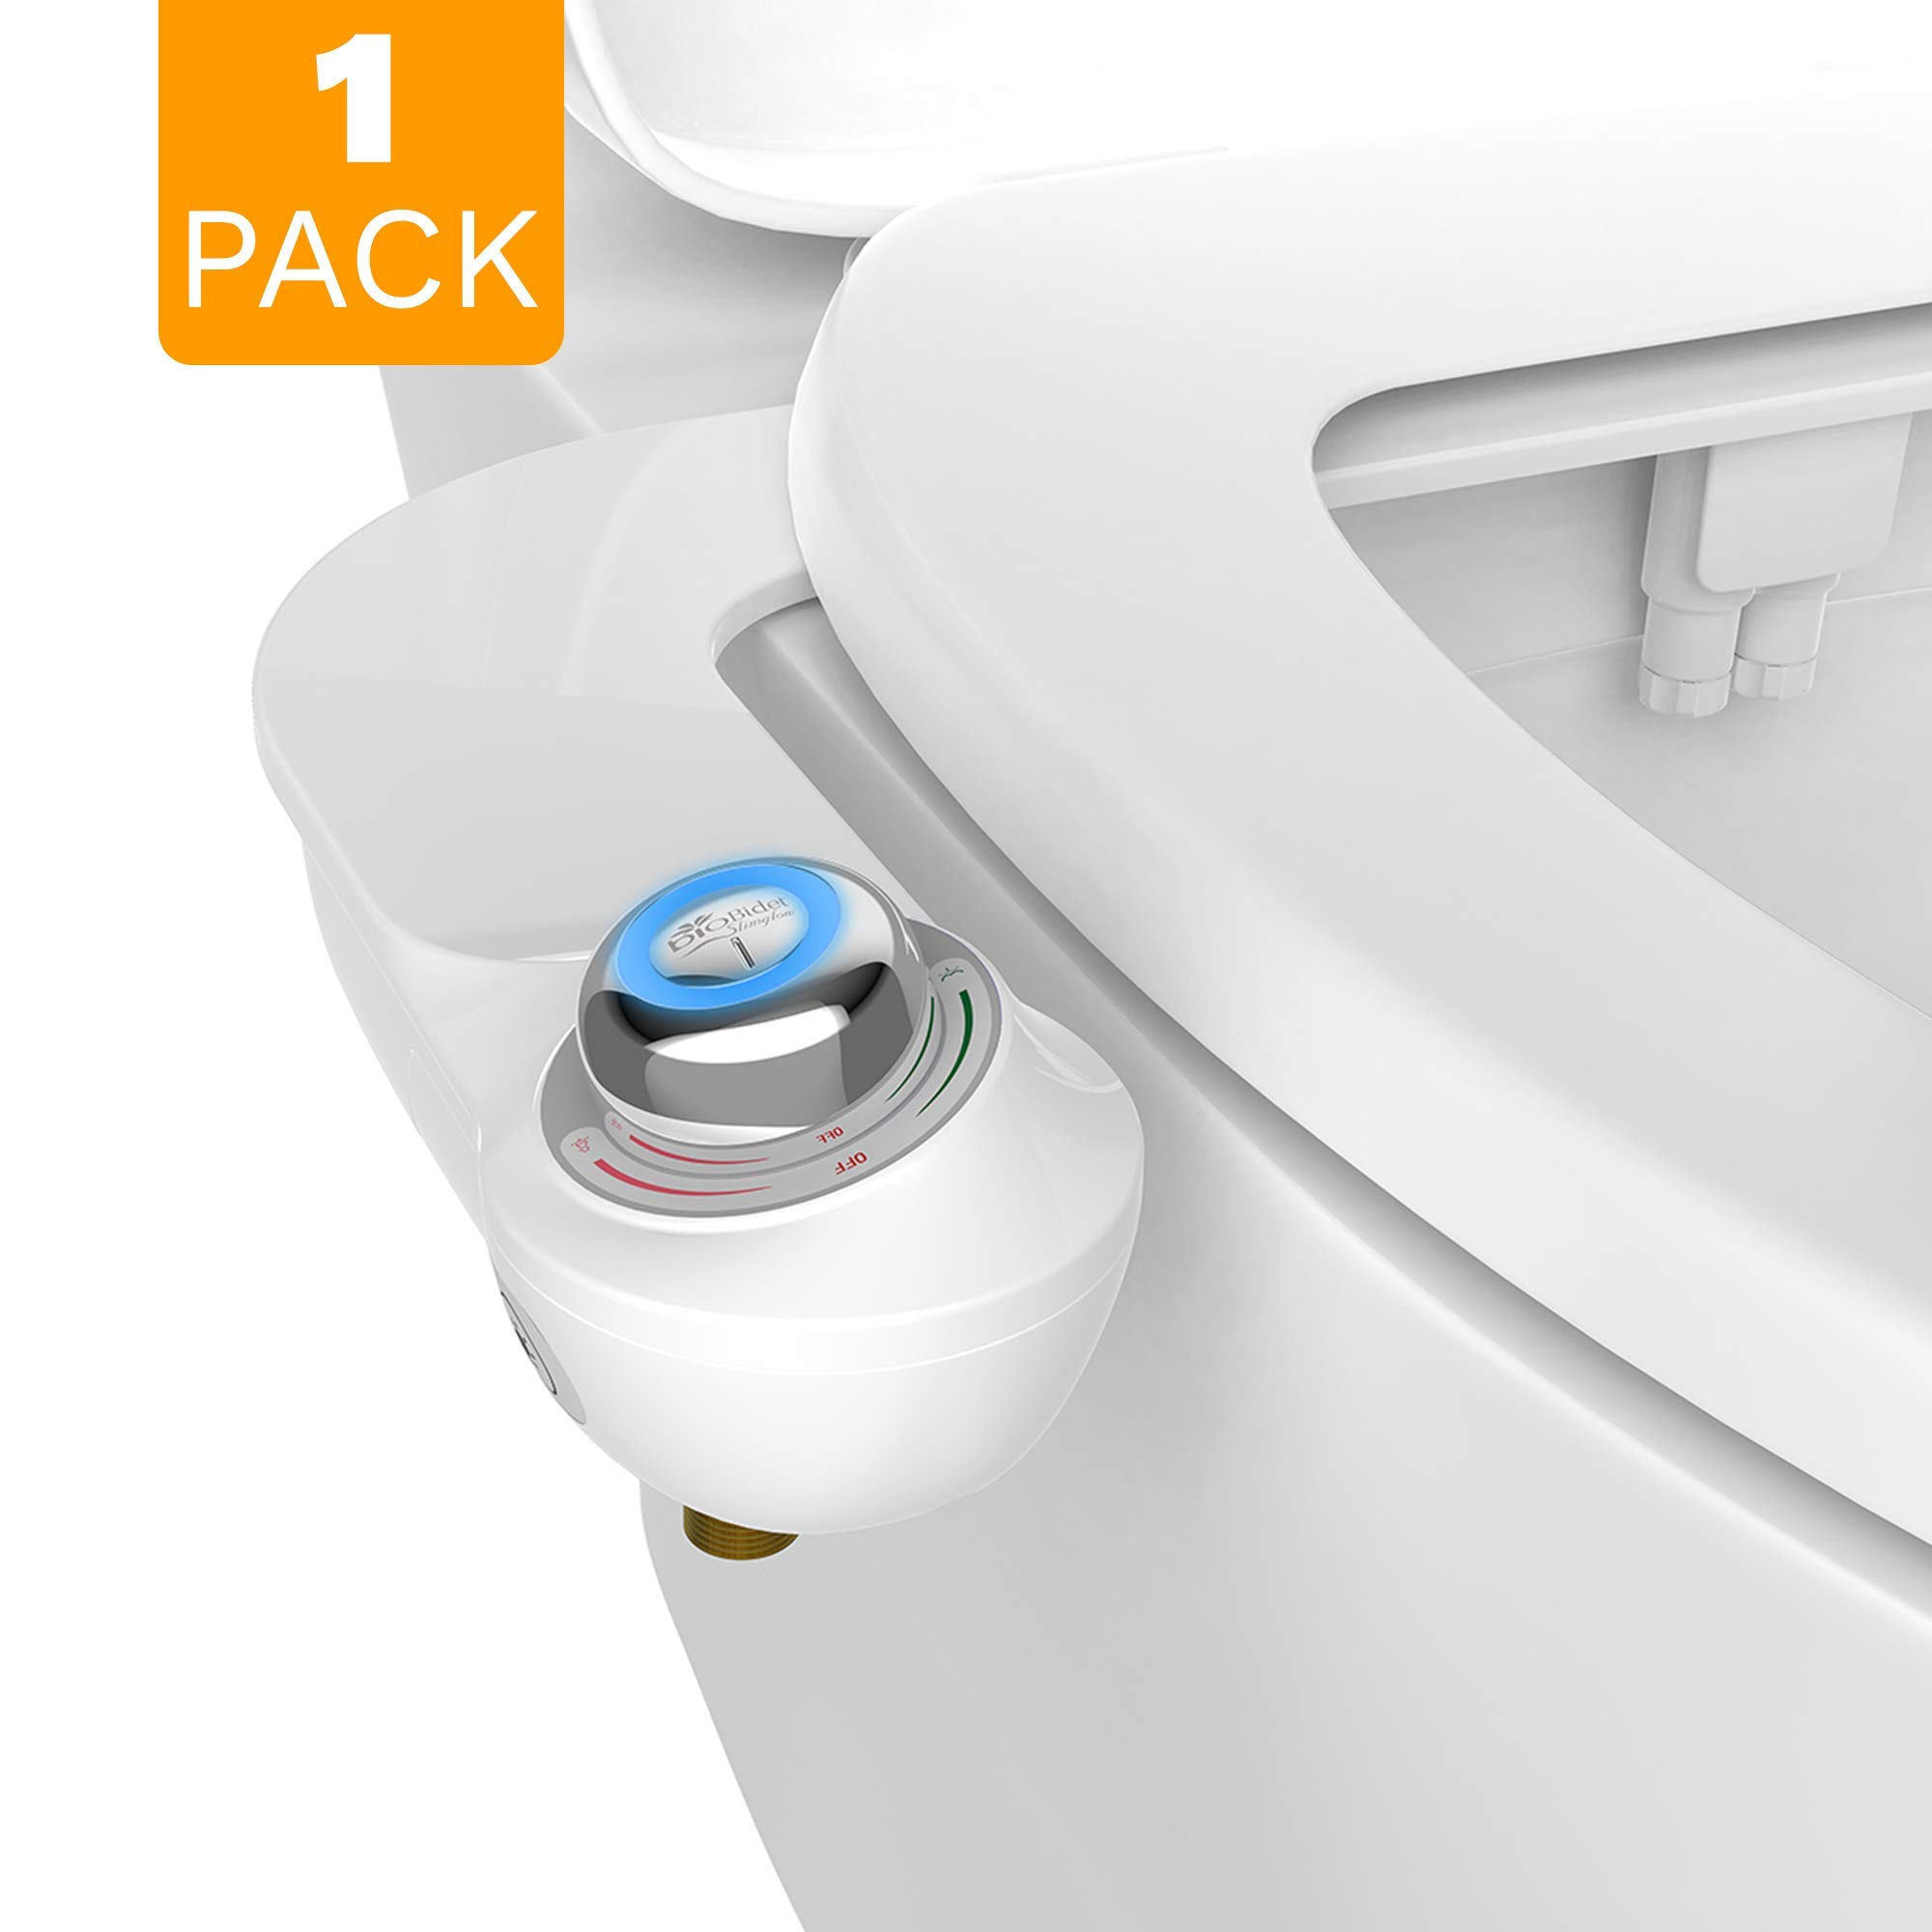 Bio Bidet SlimGlow Simple Bidet Toilet Attachment in White with Dual Nozzle, Fresh Water Spray, Non Electric, Easy to Install, Brass Inlet and Internal Valve